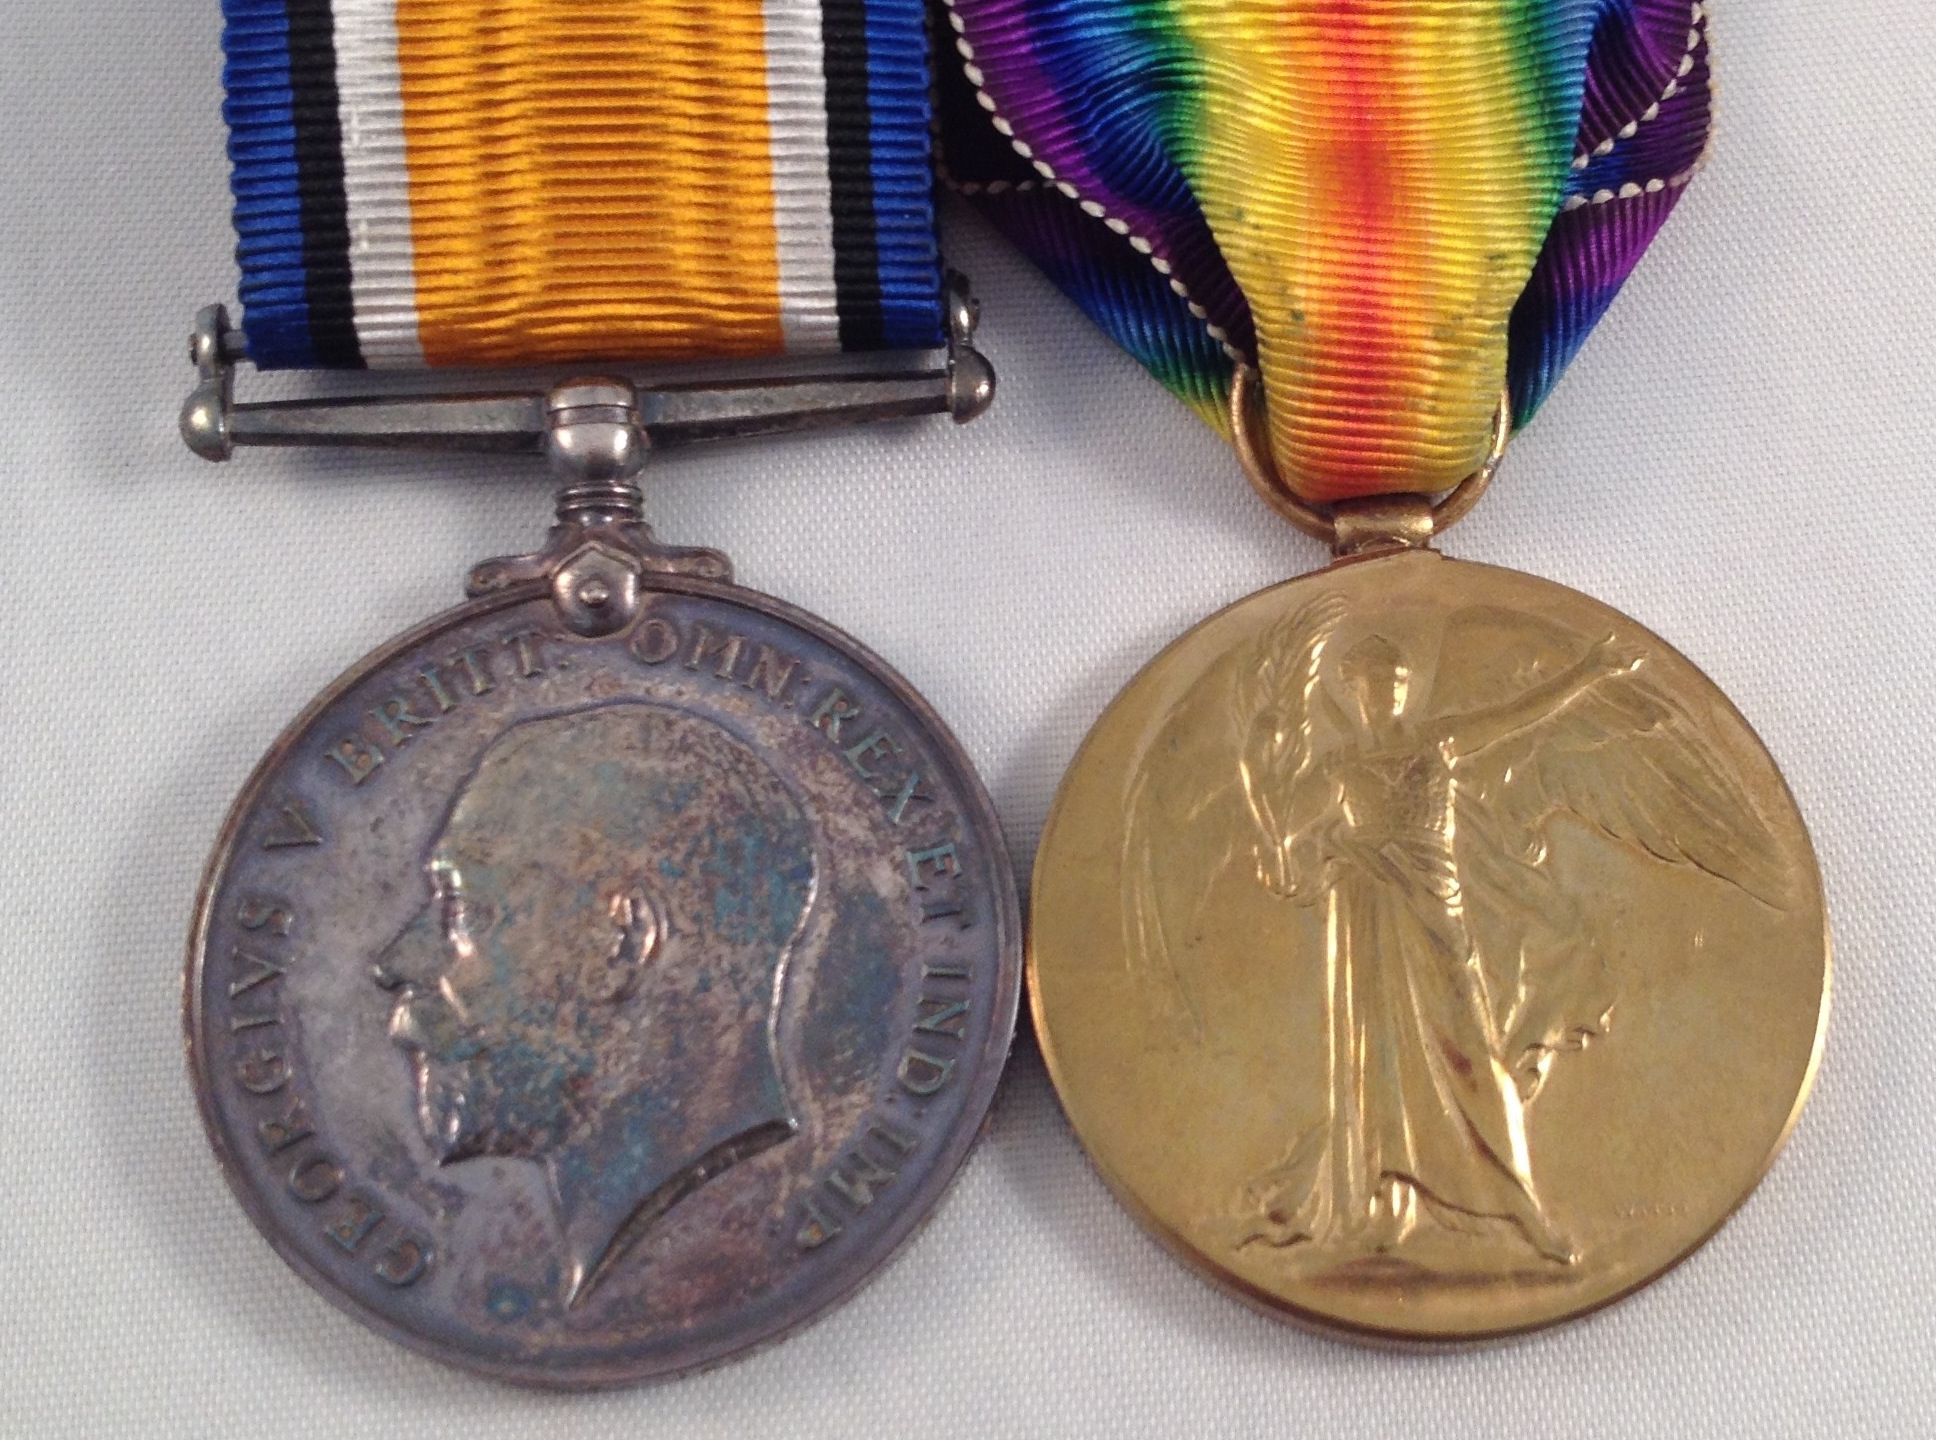 The whereabouts of Private Tricker's medals is unknown, but he was entitled to the above two medals.